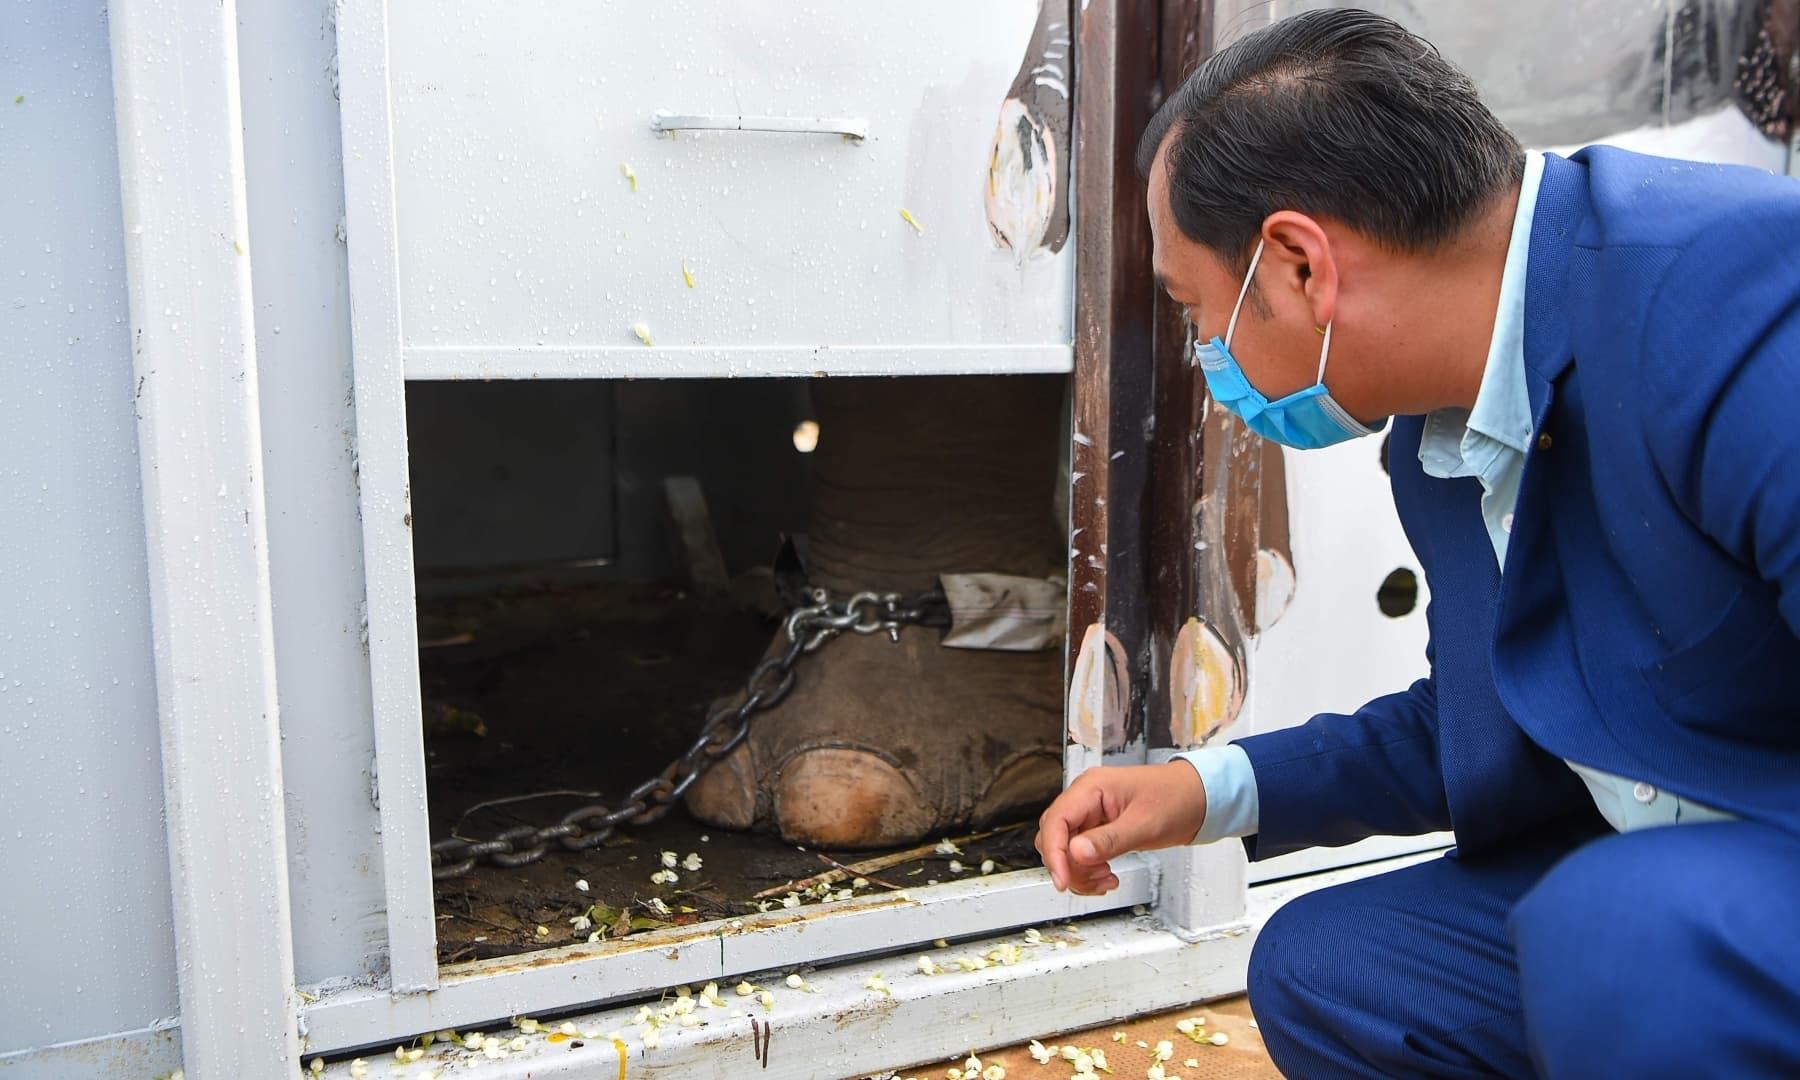 Cambodia's Deputy Minister of Environment Neth Pheaktra catches a glimpse of Kaavan after his arrival in Cambodia. — AFP